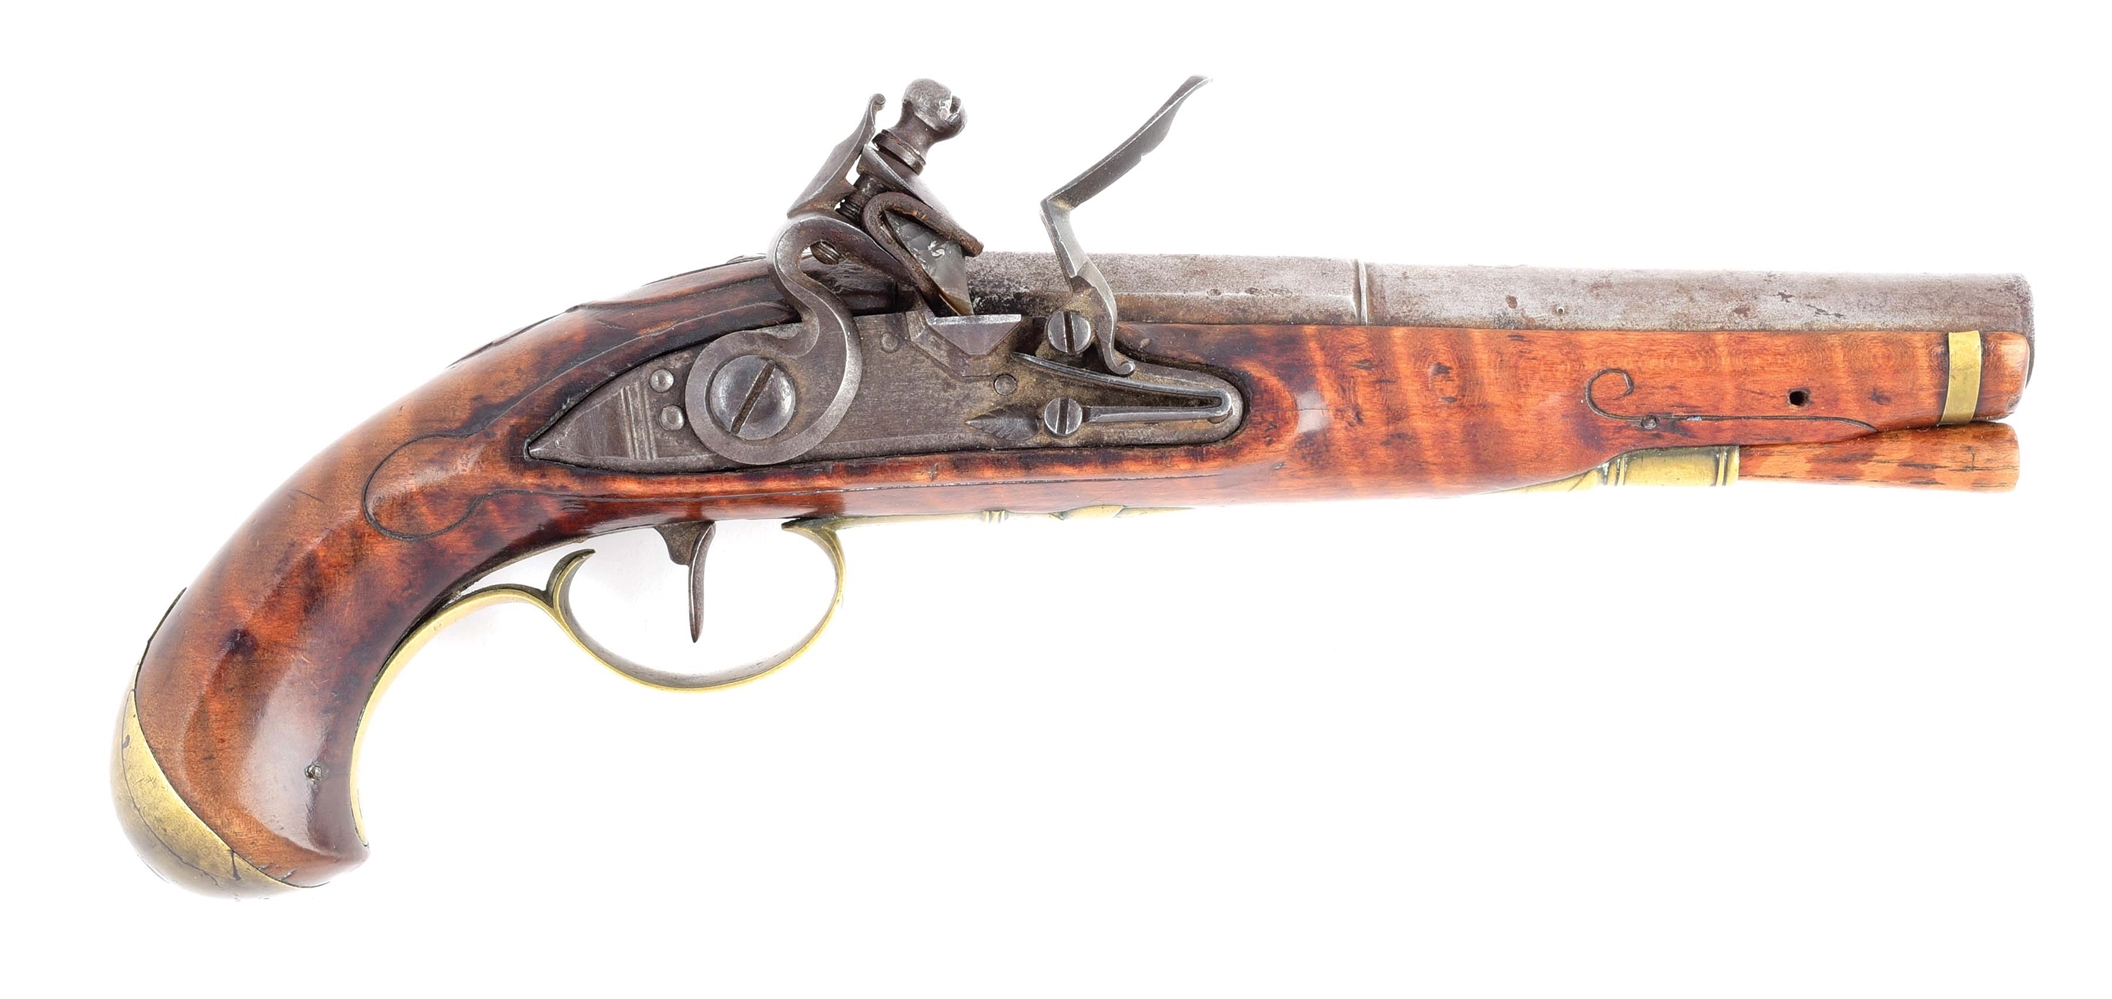 (A) EXCELLENT RARE UNTOUCHED FLINTLOCK PISTOL SIGNED J.P. BECK WITH RELIEF CARVING.